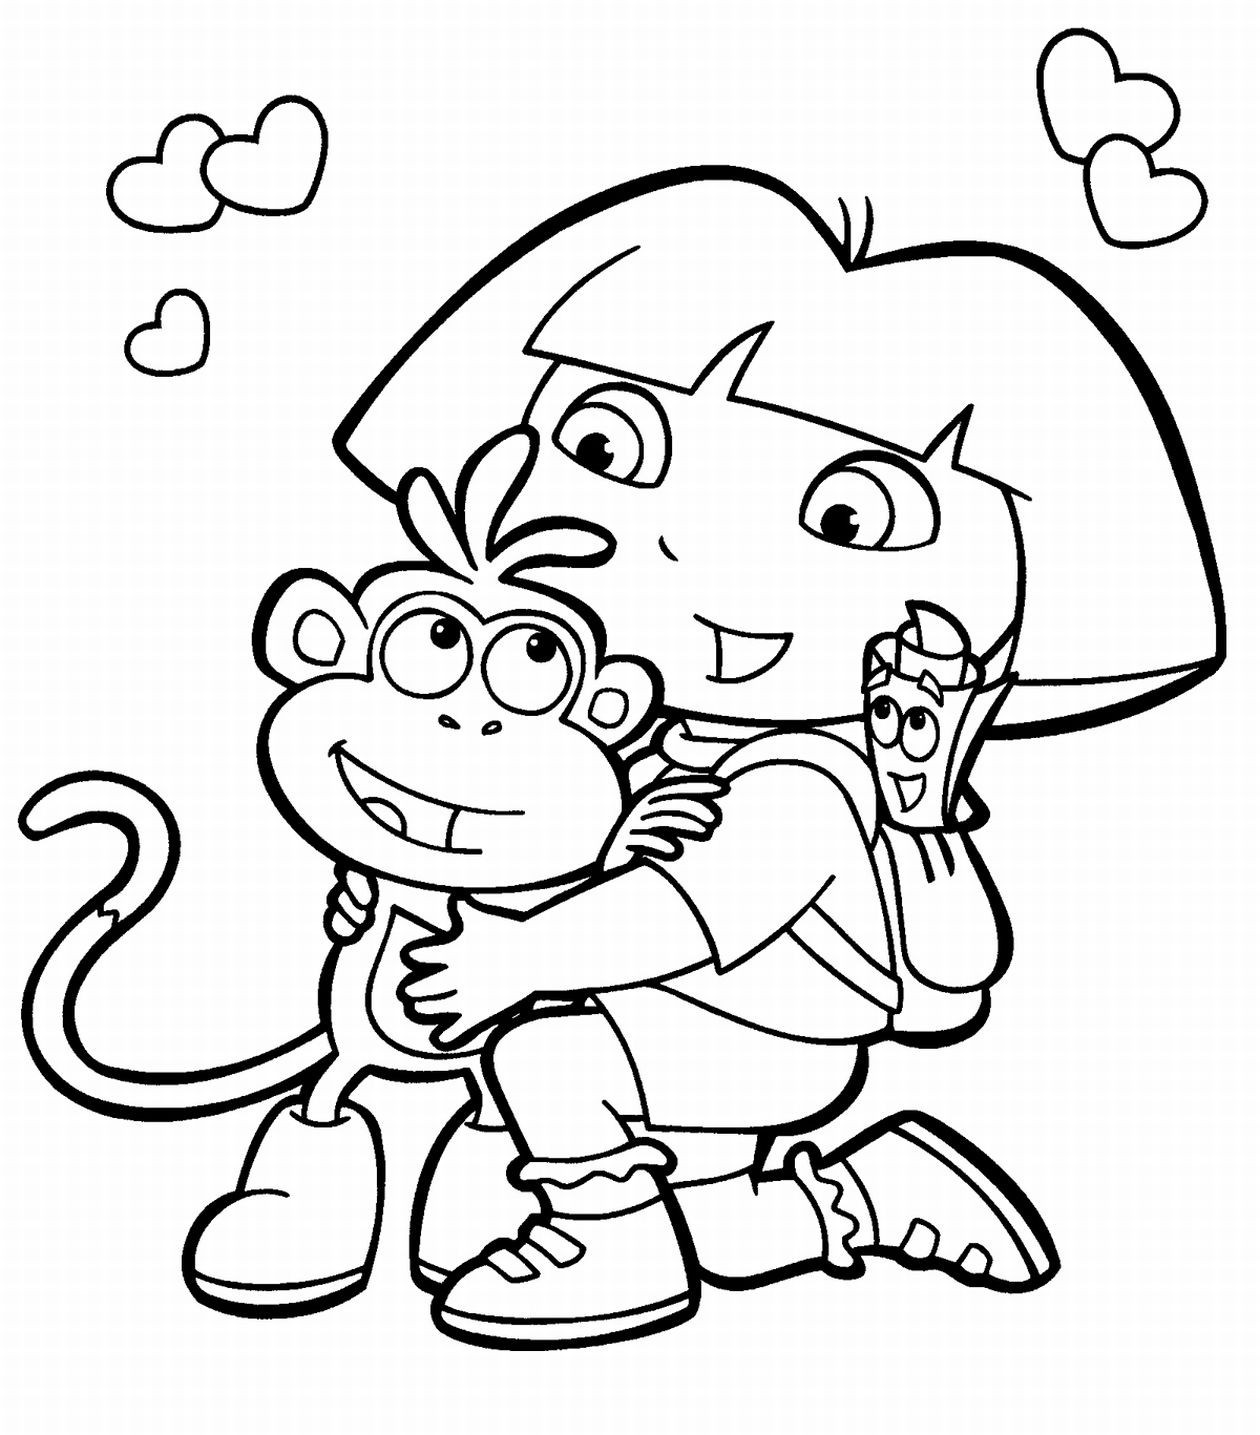 coloring pages for kids girls happy girl coloring pages download and print for free for coloring girls kids pages